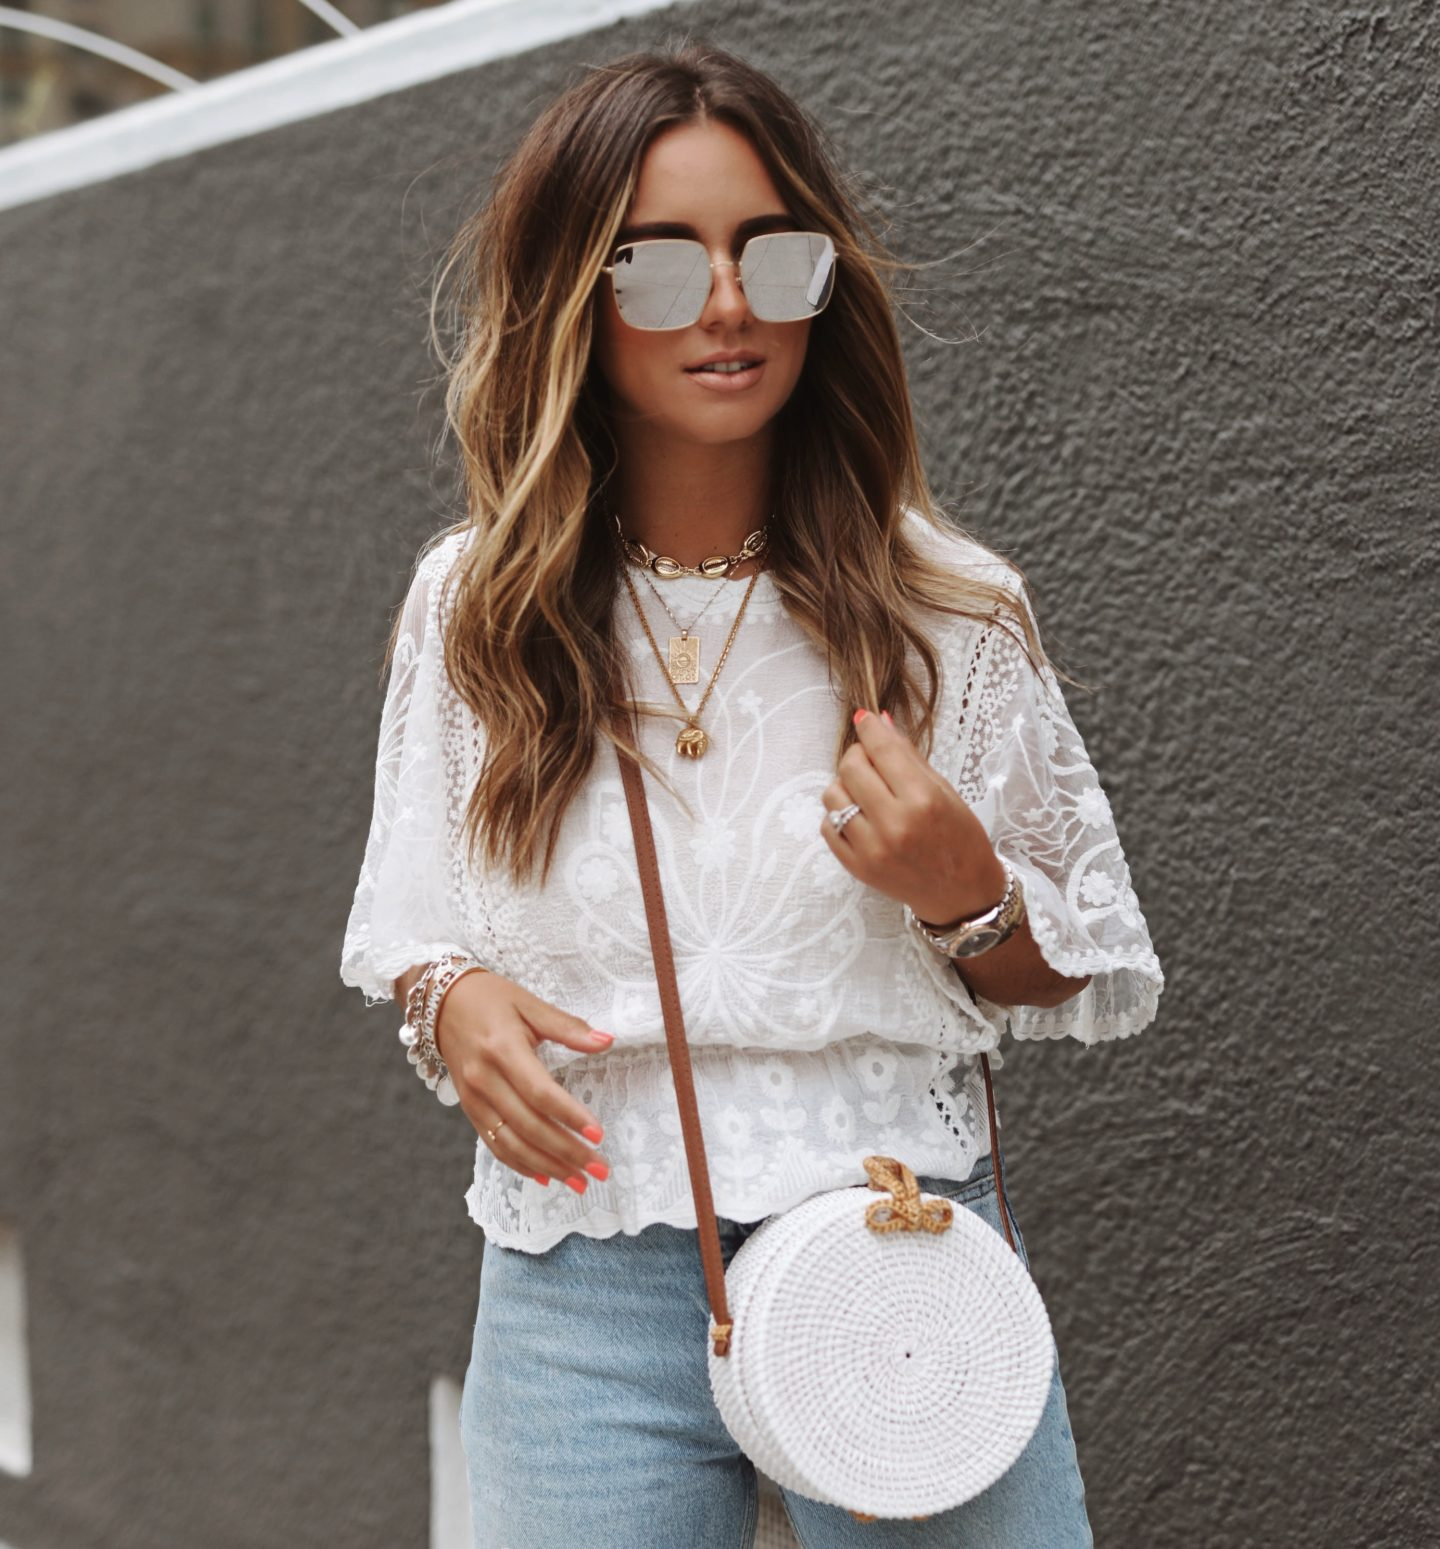 5 Reasons to Purchase Mirrored Sunnies